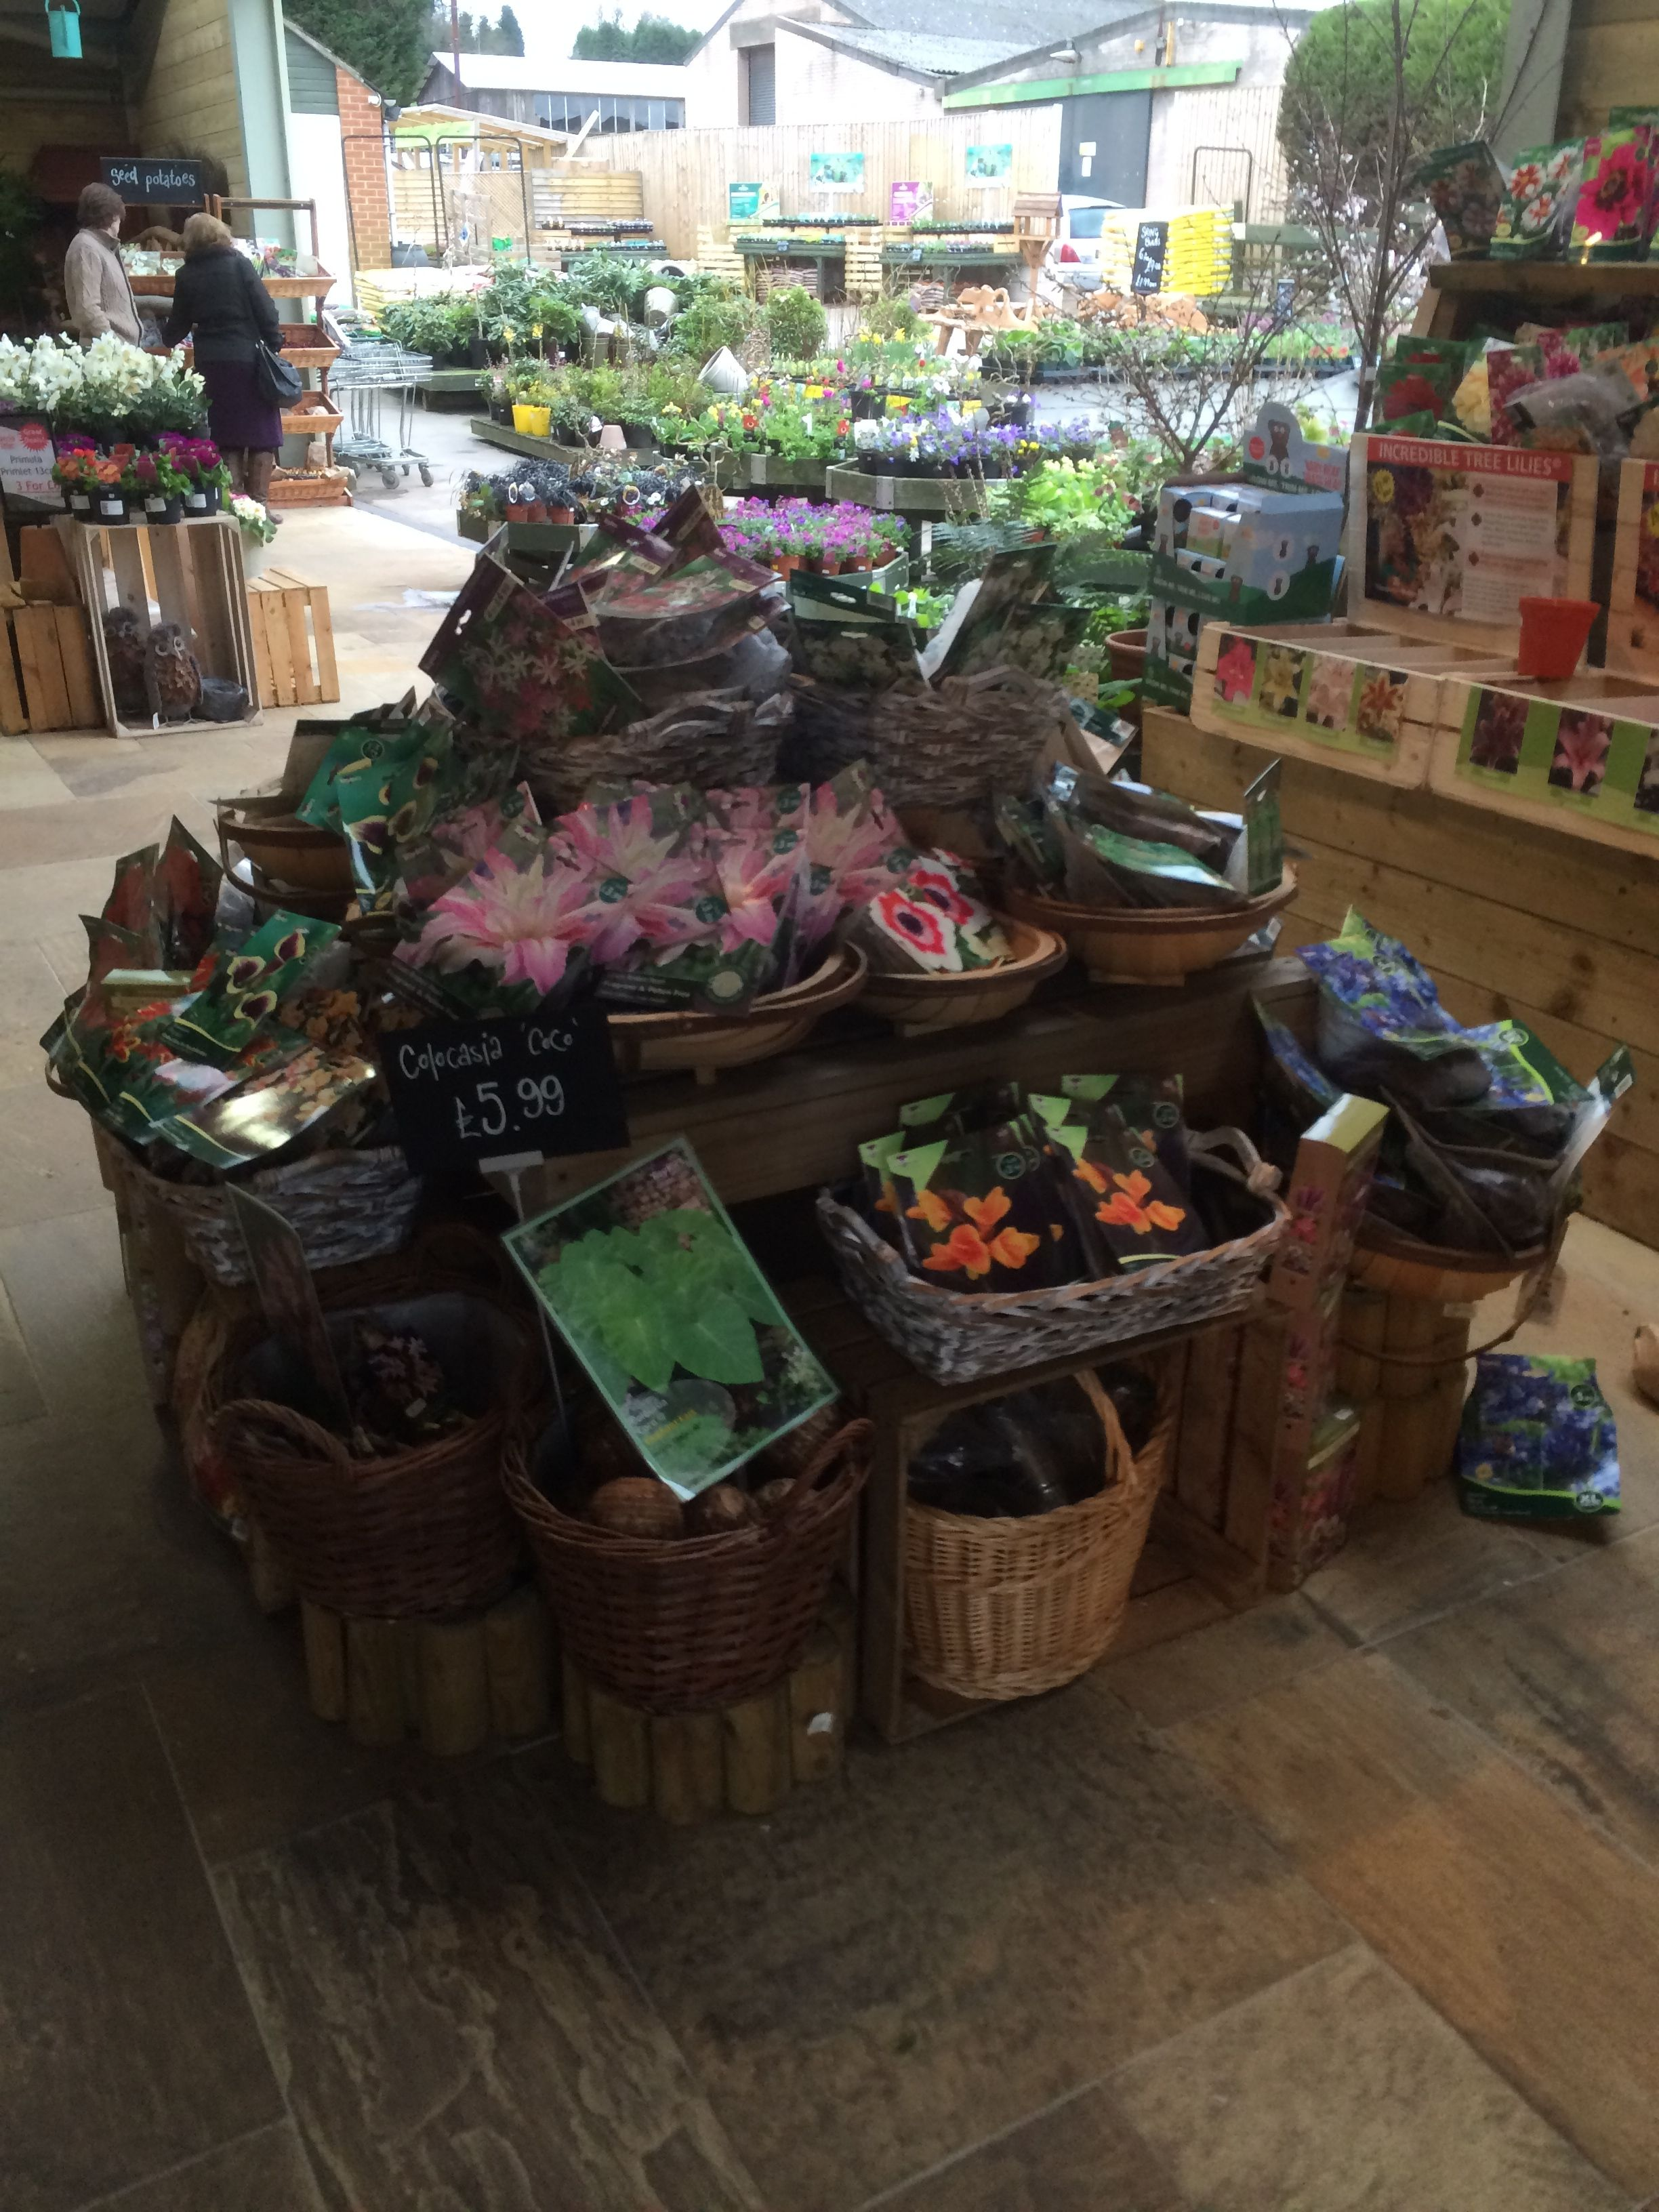 Timmermans Garden Centre Nursery Outdoor Retail Home Lifestyle Plants Visual Merchandising Layout Landscape